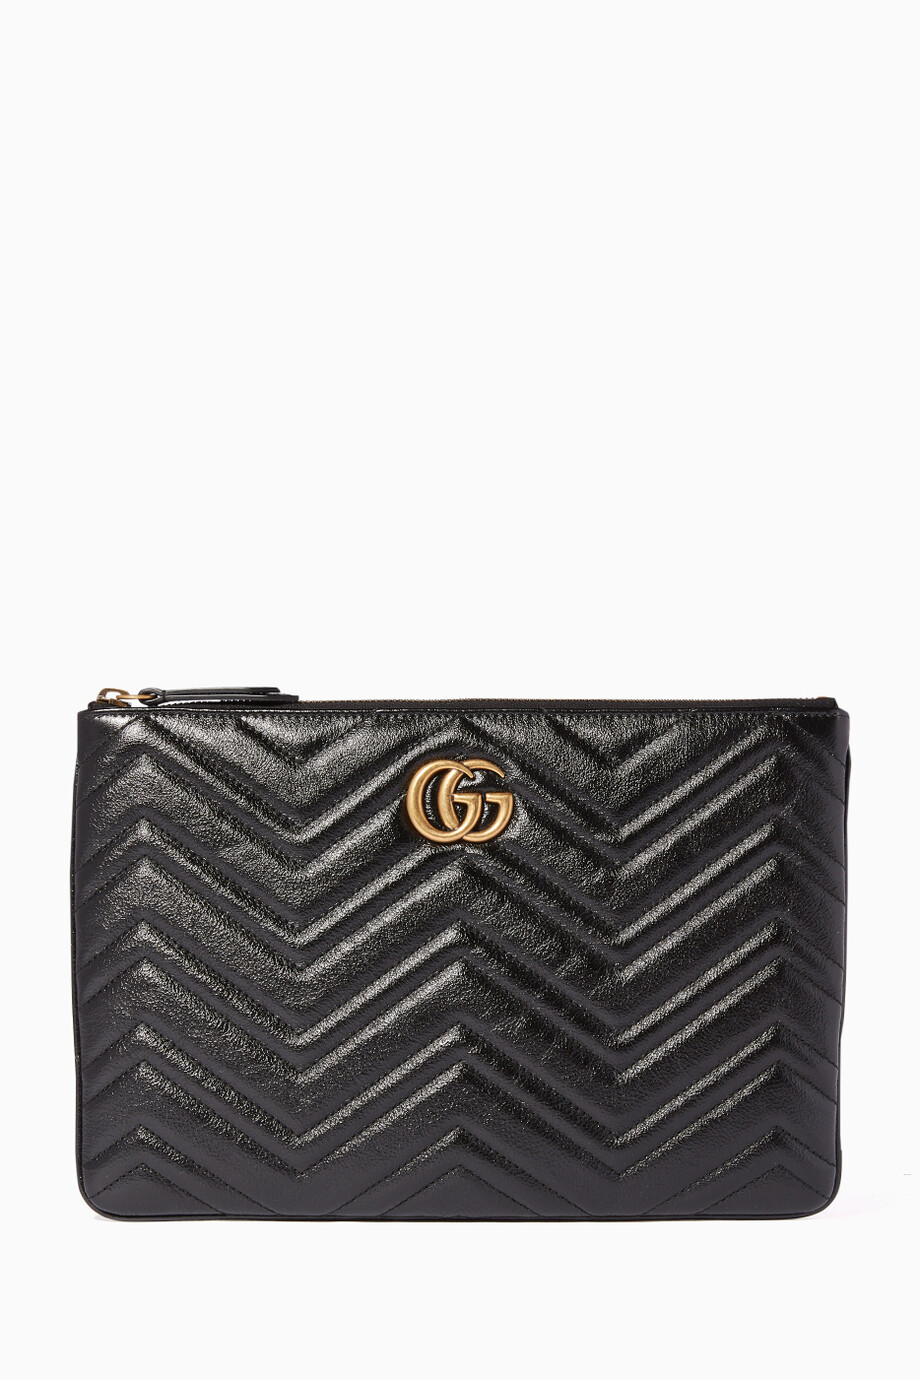 660a1a9fd34 Shop Gucci Black Chevron Quilted GG Marmont Pouch for Women